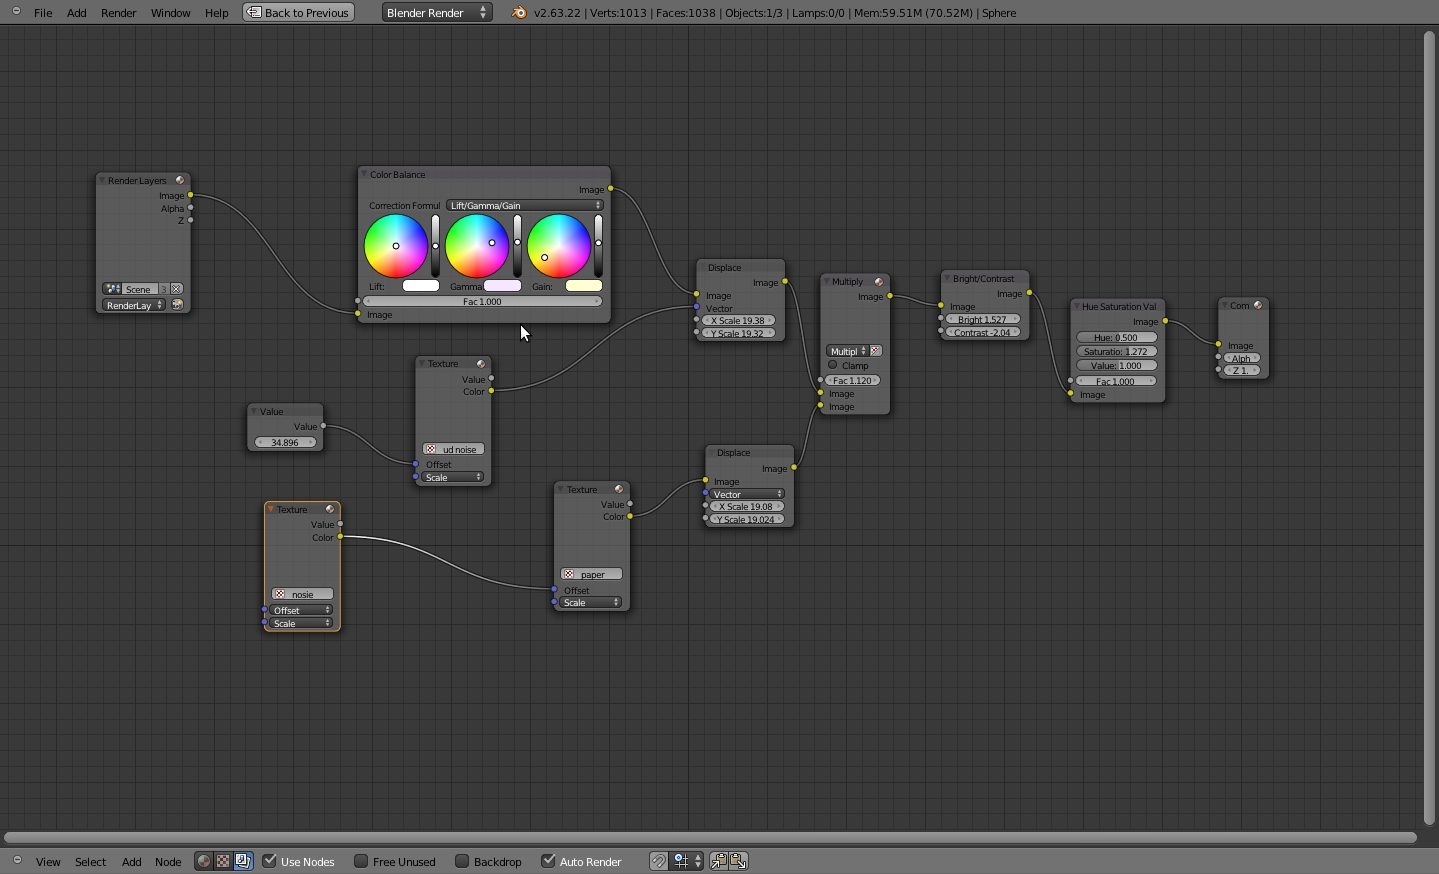 Rylan's art blog: A painterly look with Blender compositor